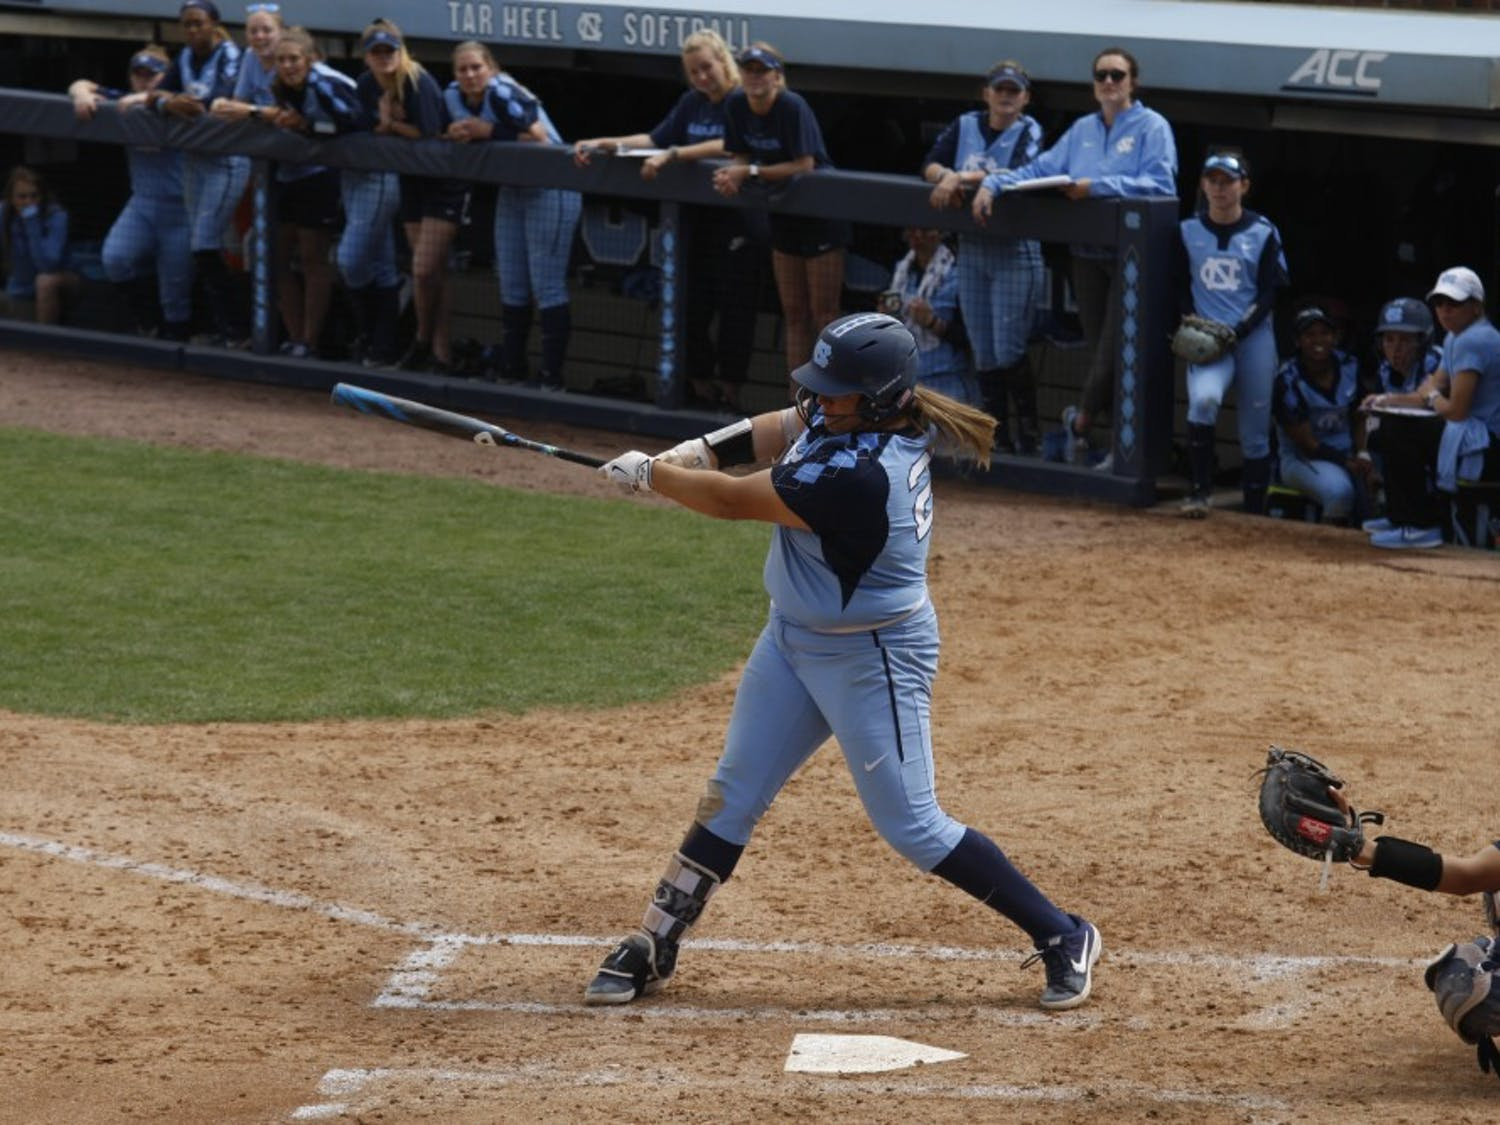 Junior pitcher and first baseman Brittany Pickett (28) hits during UNC's double header against the University of Virginia. The Tar Heels won both games 8-0 at the G. Anderson Softball Stadium on Sunday, Apr. 7, 2019.